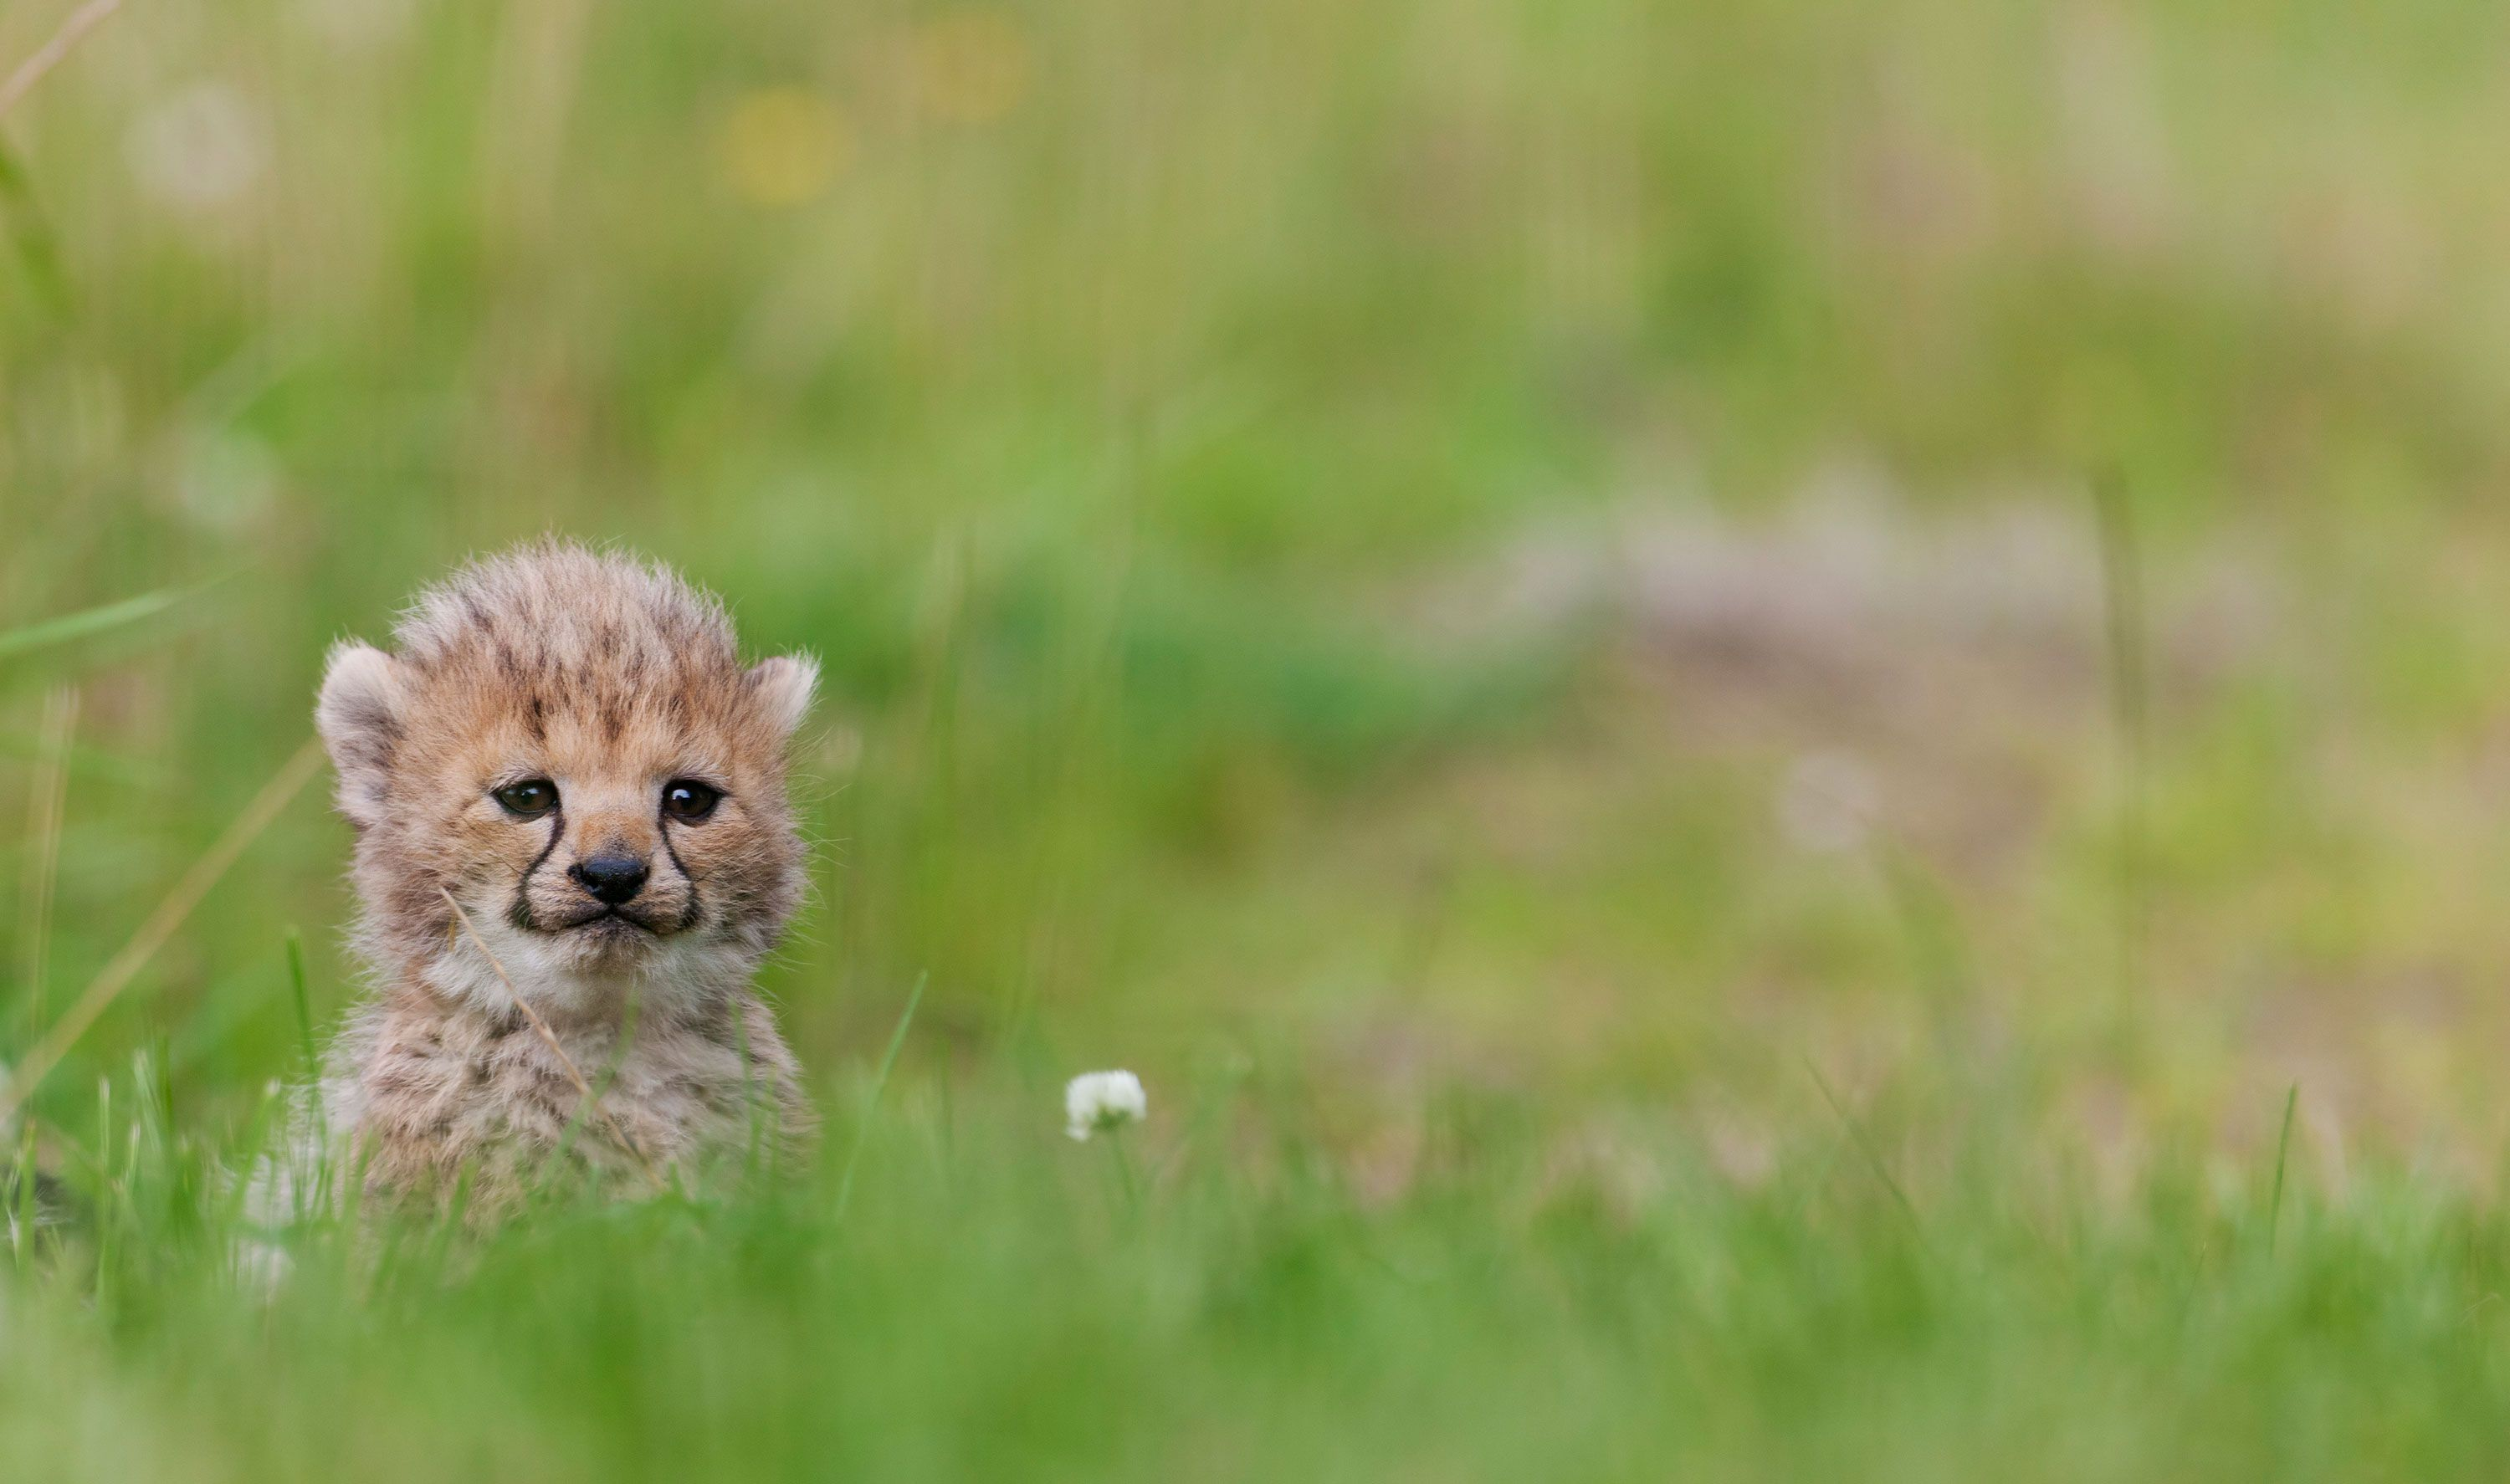 Anxious Baby Cheetahs Have Puppy Playdates To Help Them Relax